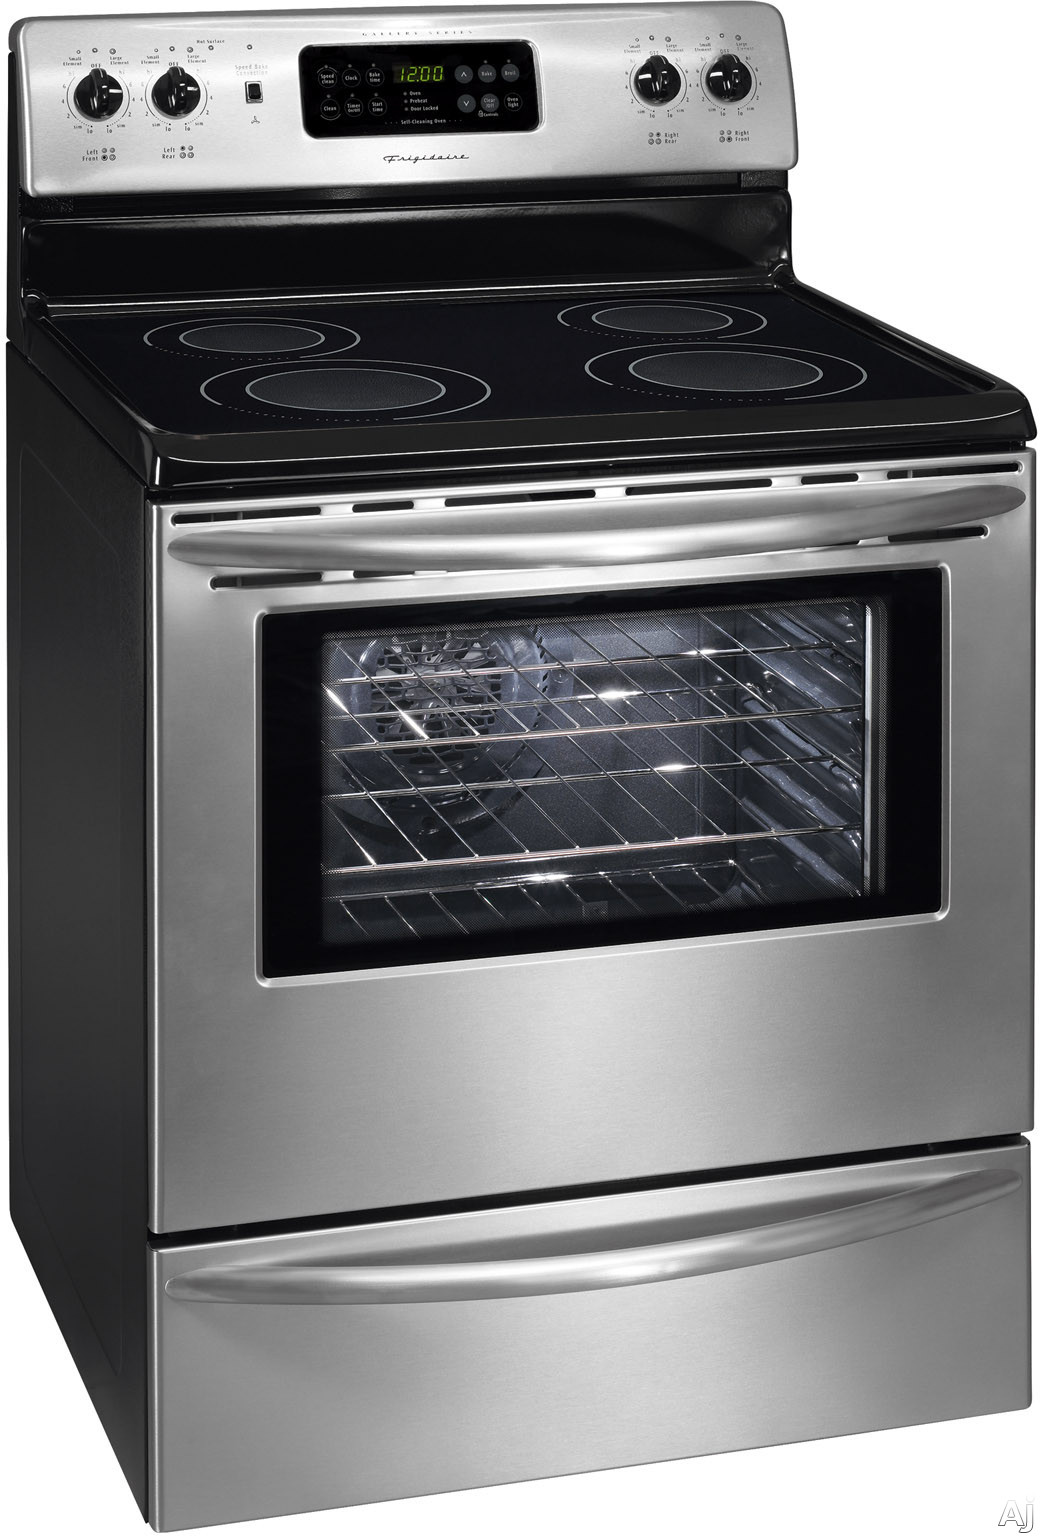 Frigidaire Gallery Professional Series Oven Instruction Manual Guide